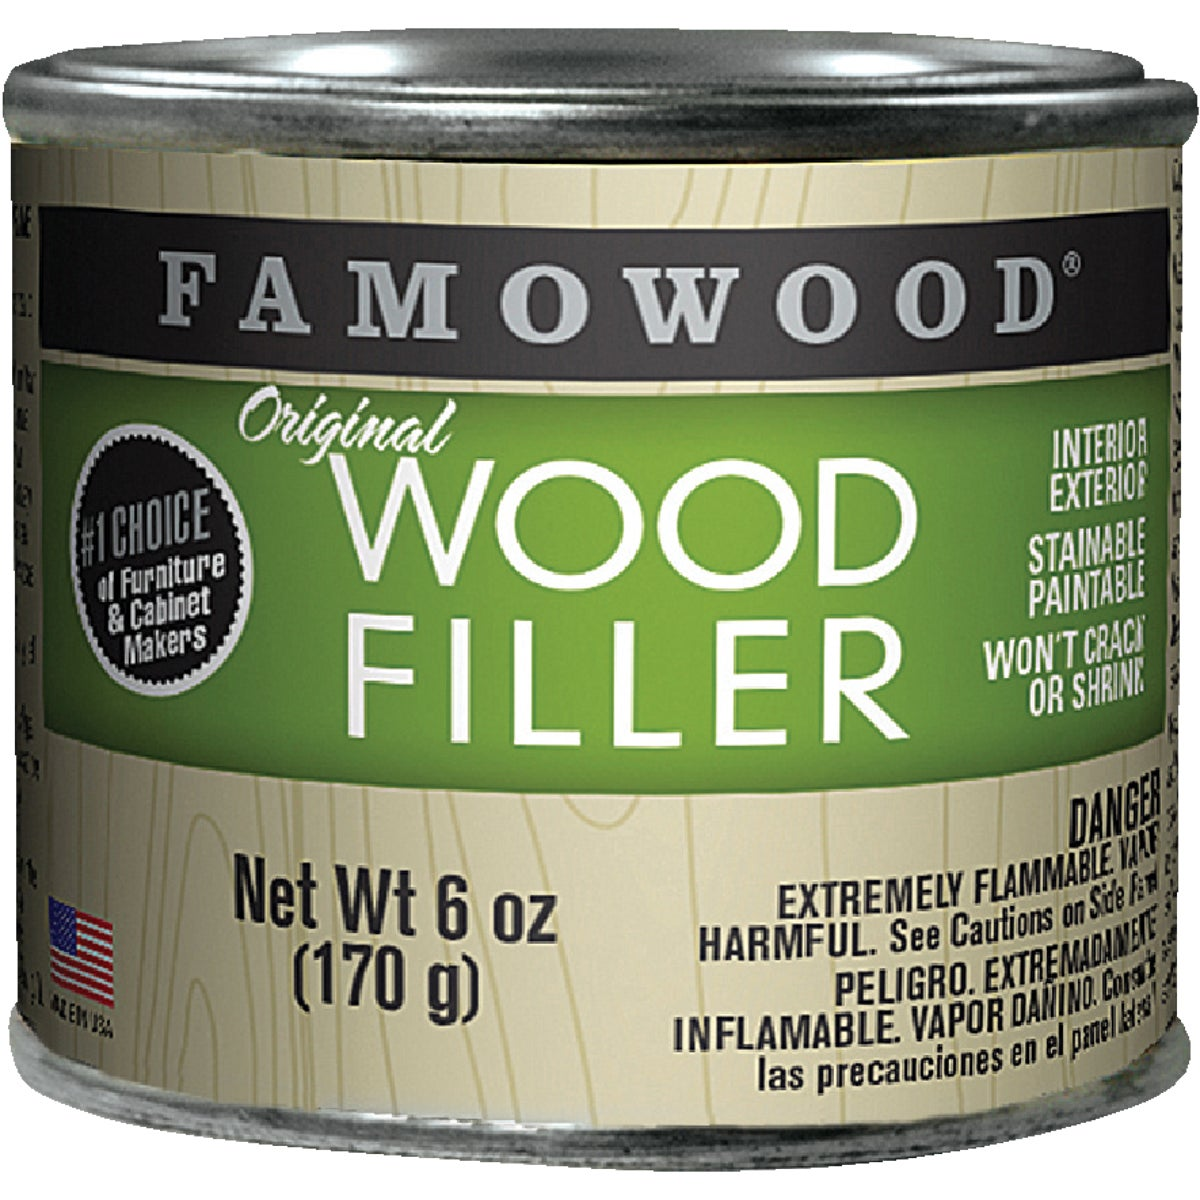 1/4PT WHT PN WOOD FILLER